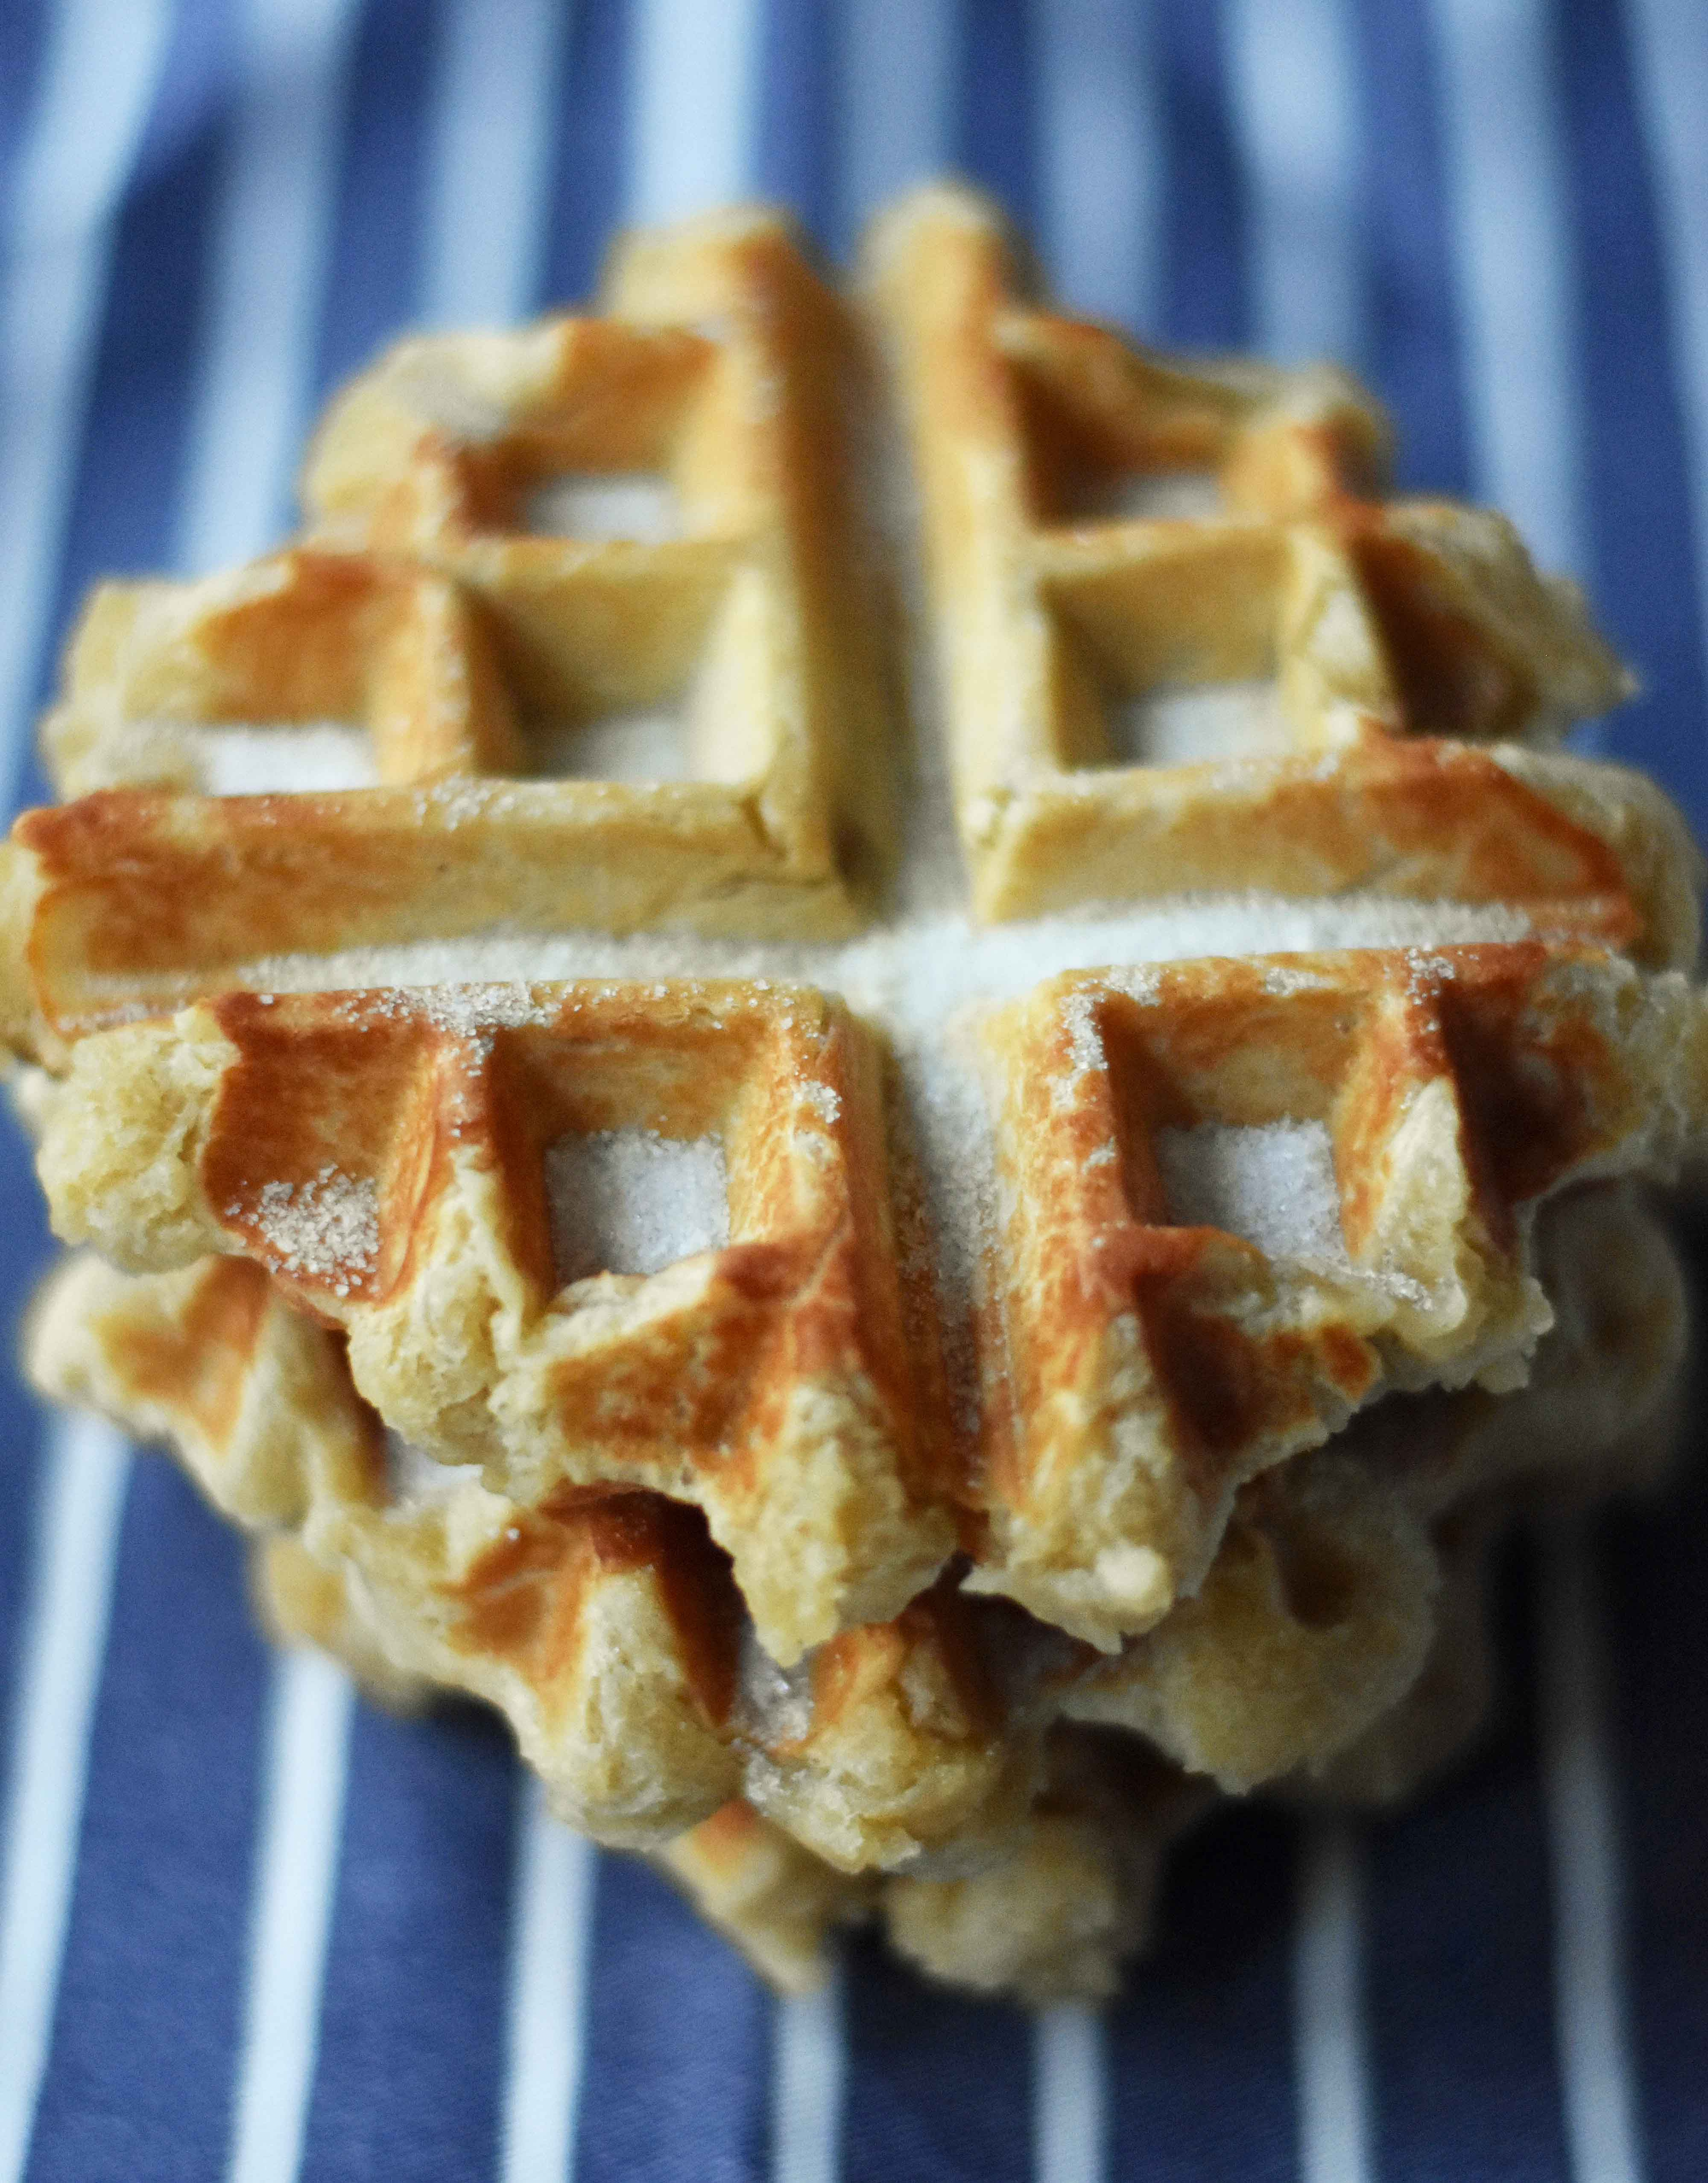 Homemade Best Belgian Liege Waffles. How to make popular belgian liege waffles at home. Waffles n Dingles and Waffle Love Copycat recipe. Perfect belgian liege waffles every single time. Delicious dessert waffles or decadent breakfast waffles. www.modernhoney.com